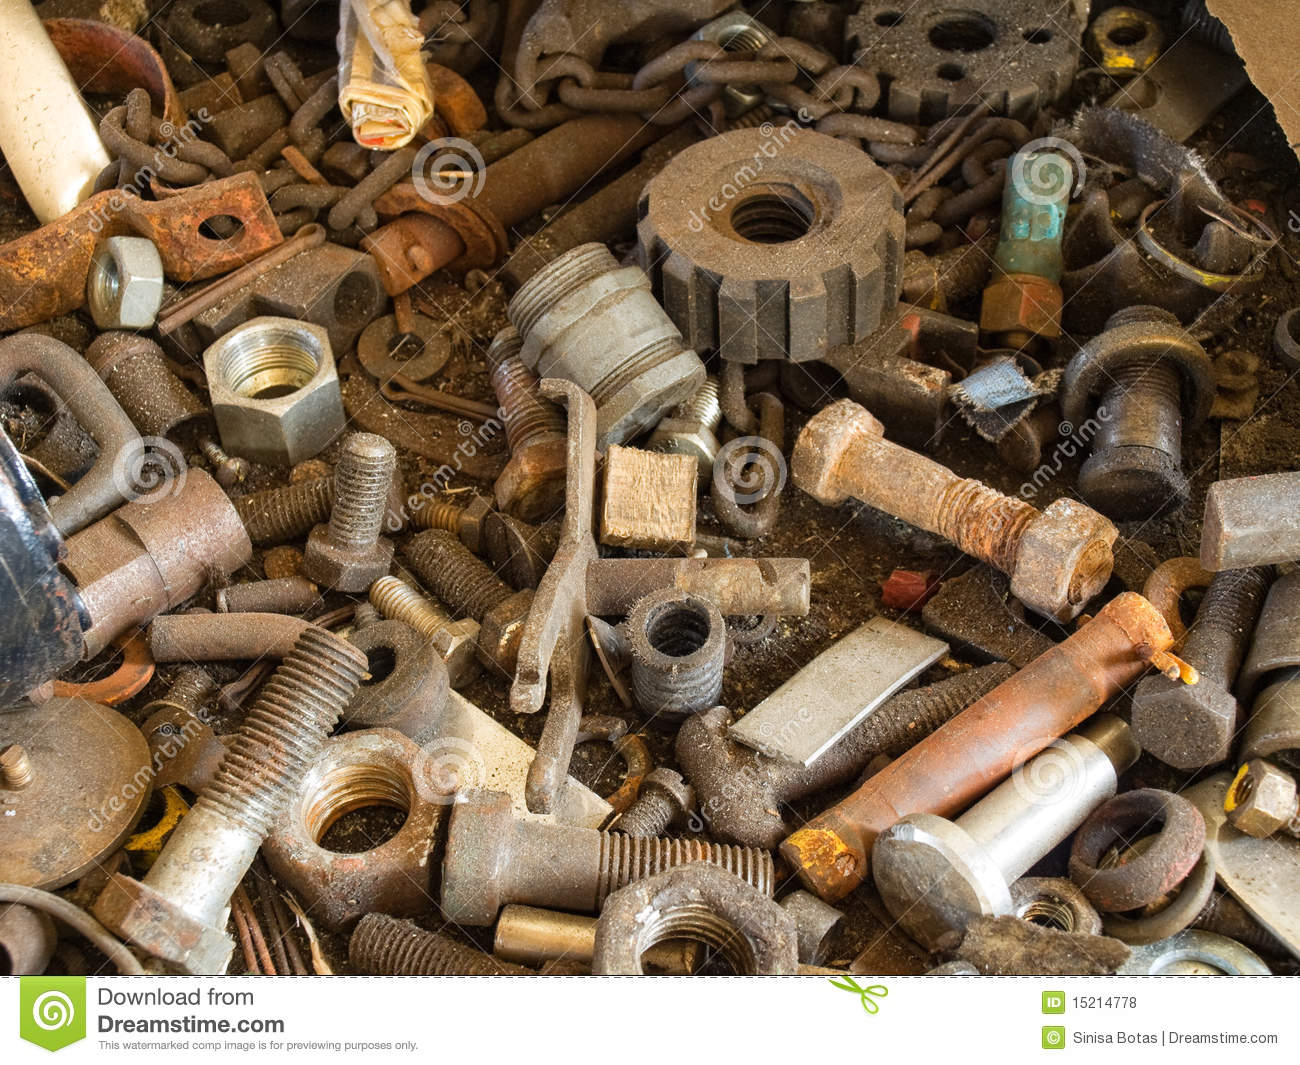 Solid Industrial Waste Royalty Free Stock s Image